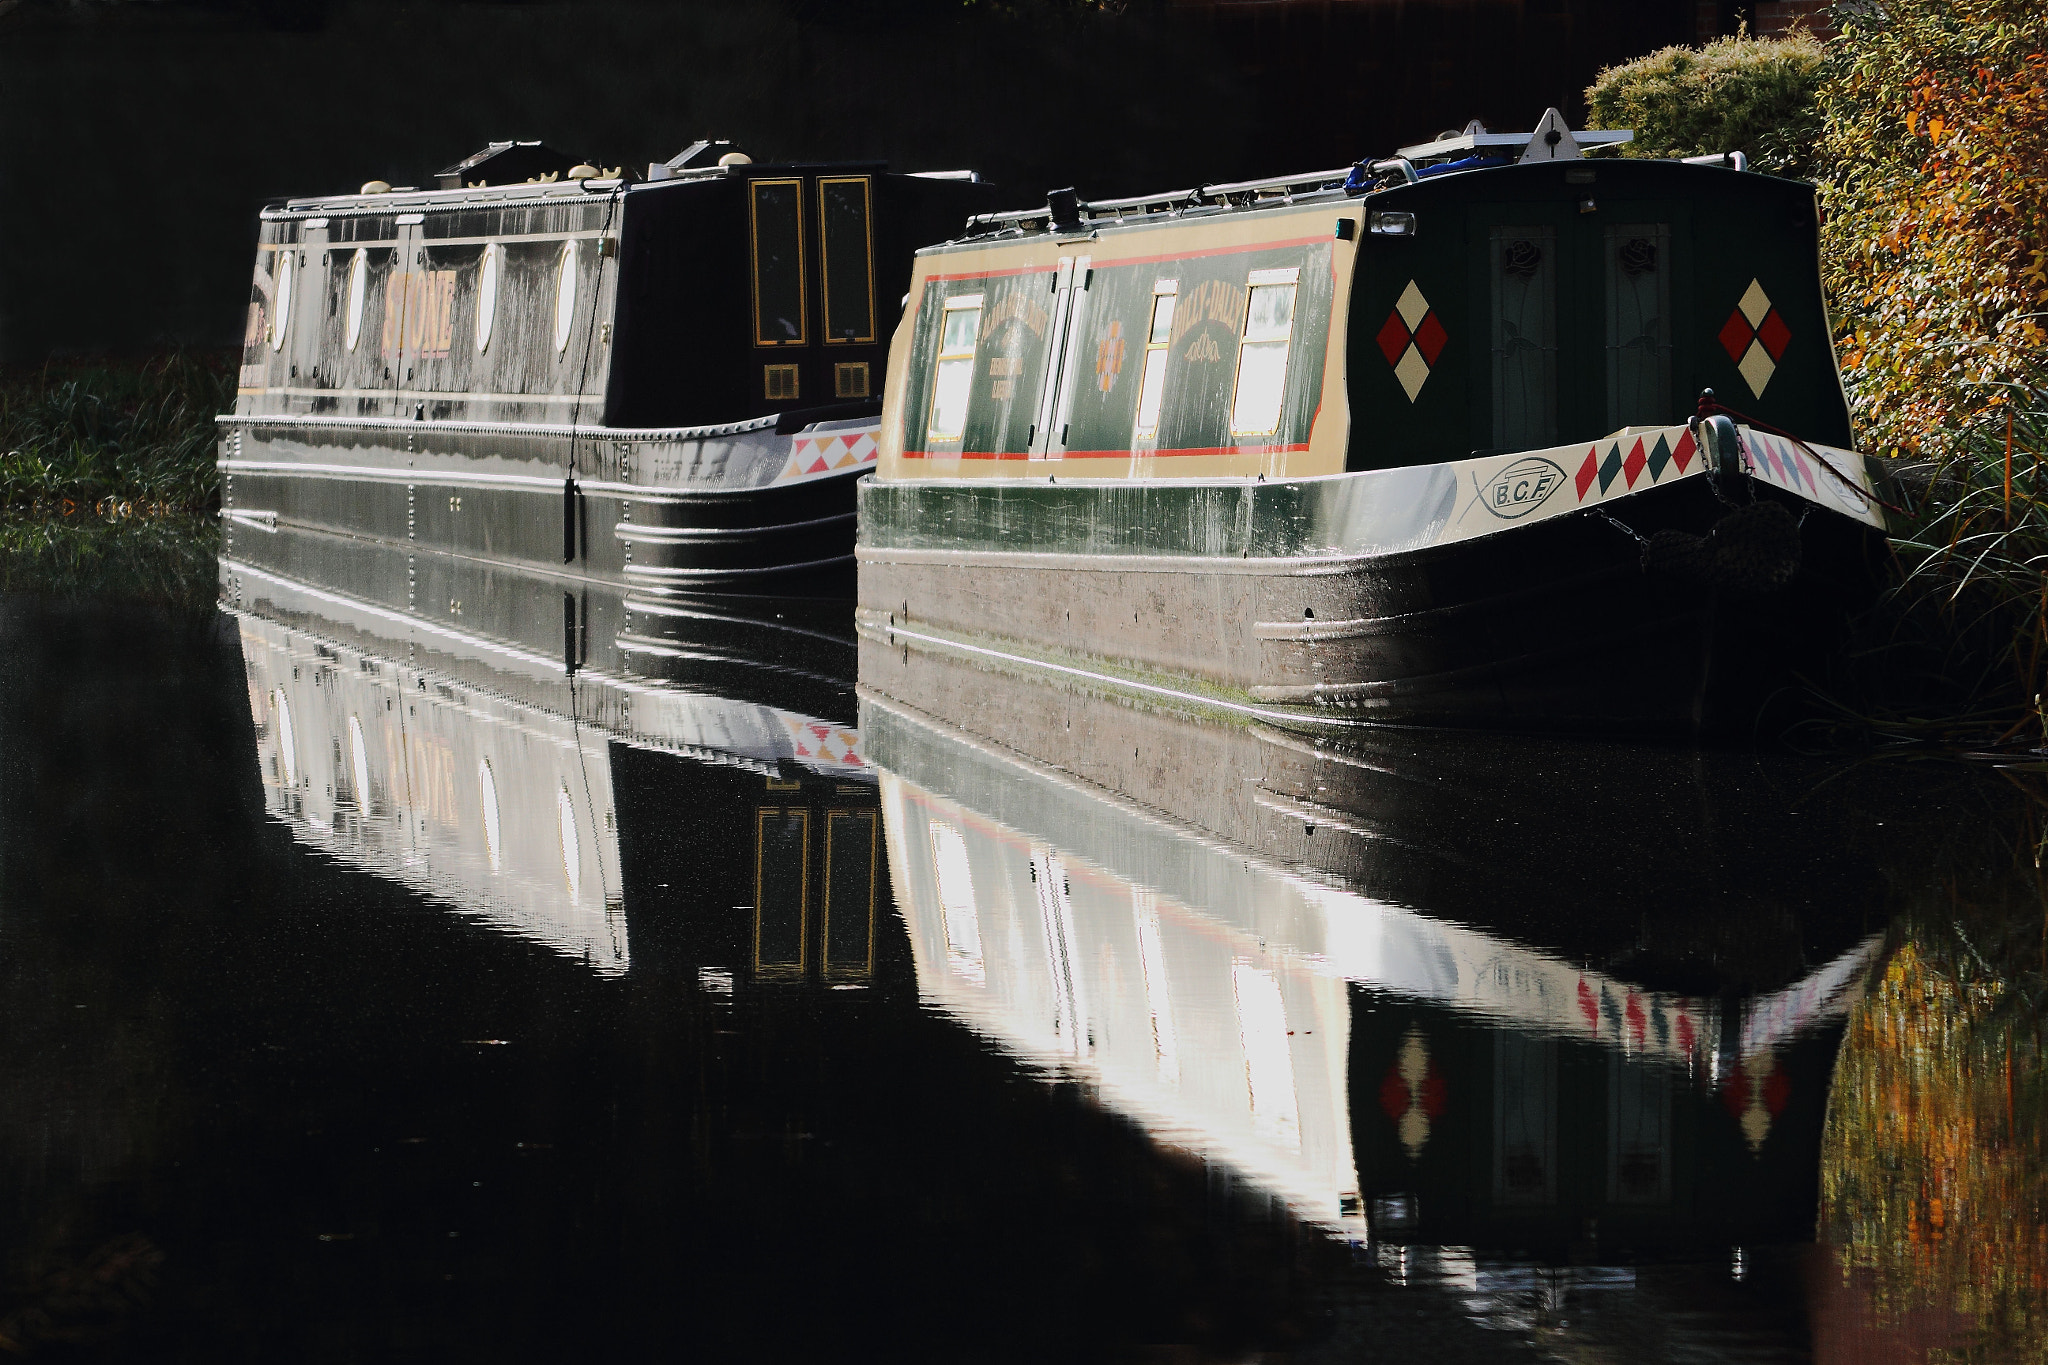 Photograph Narrow Boats by Steve Adams on 500px